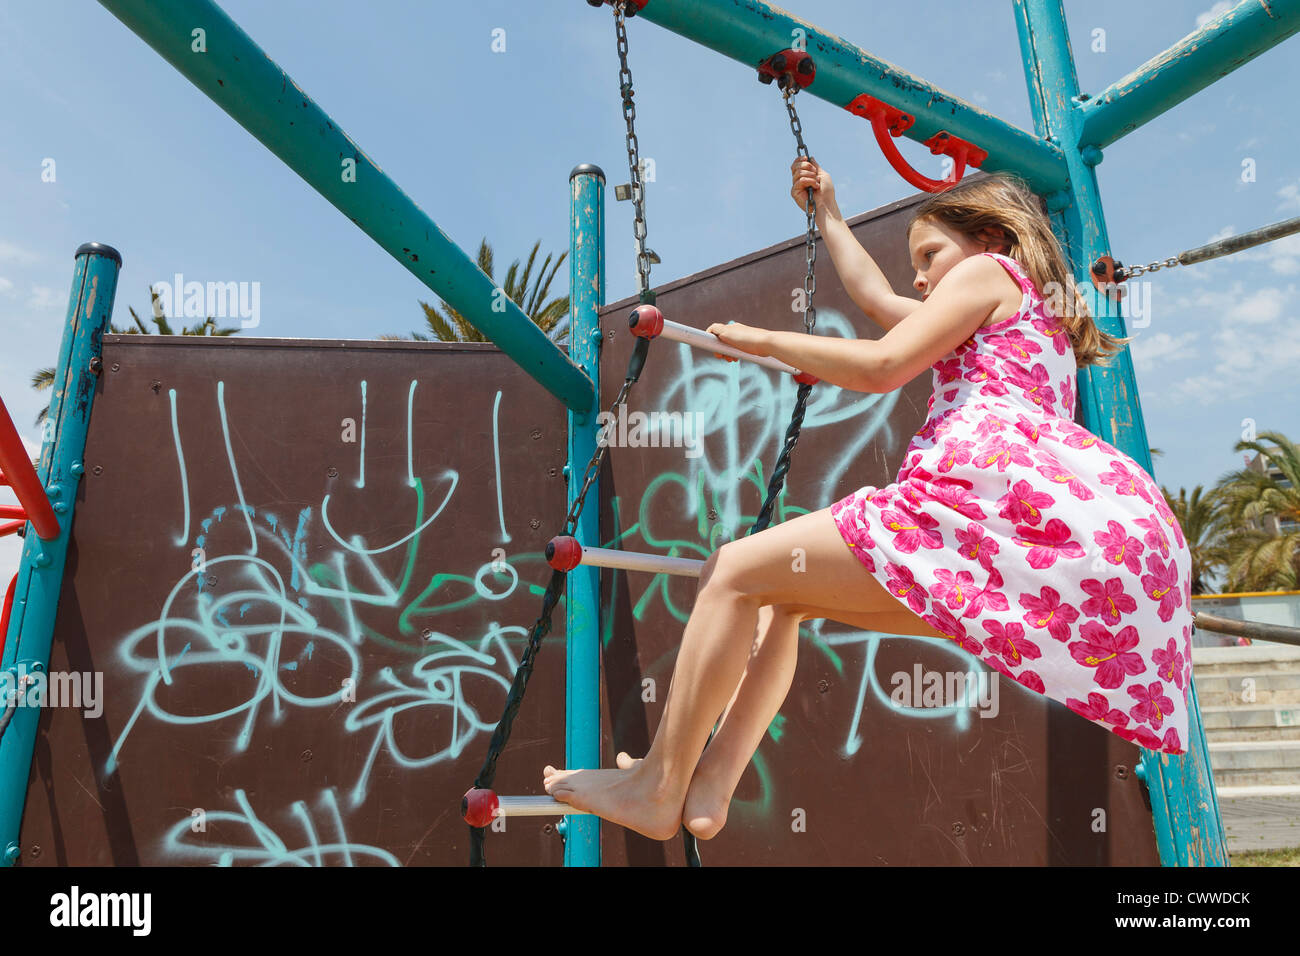 Girl on playground ladder outdoors - Stock Image